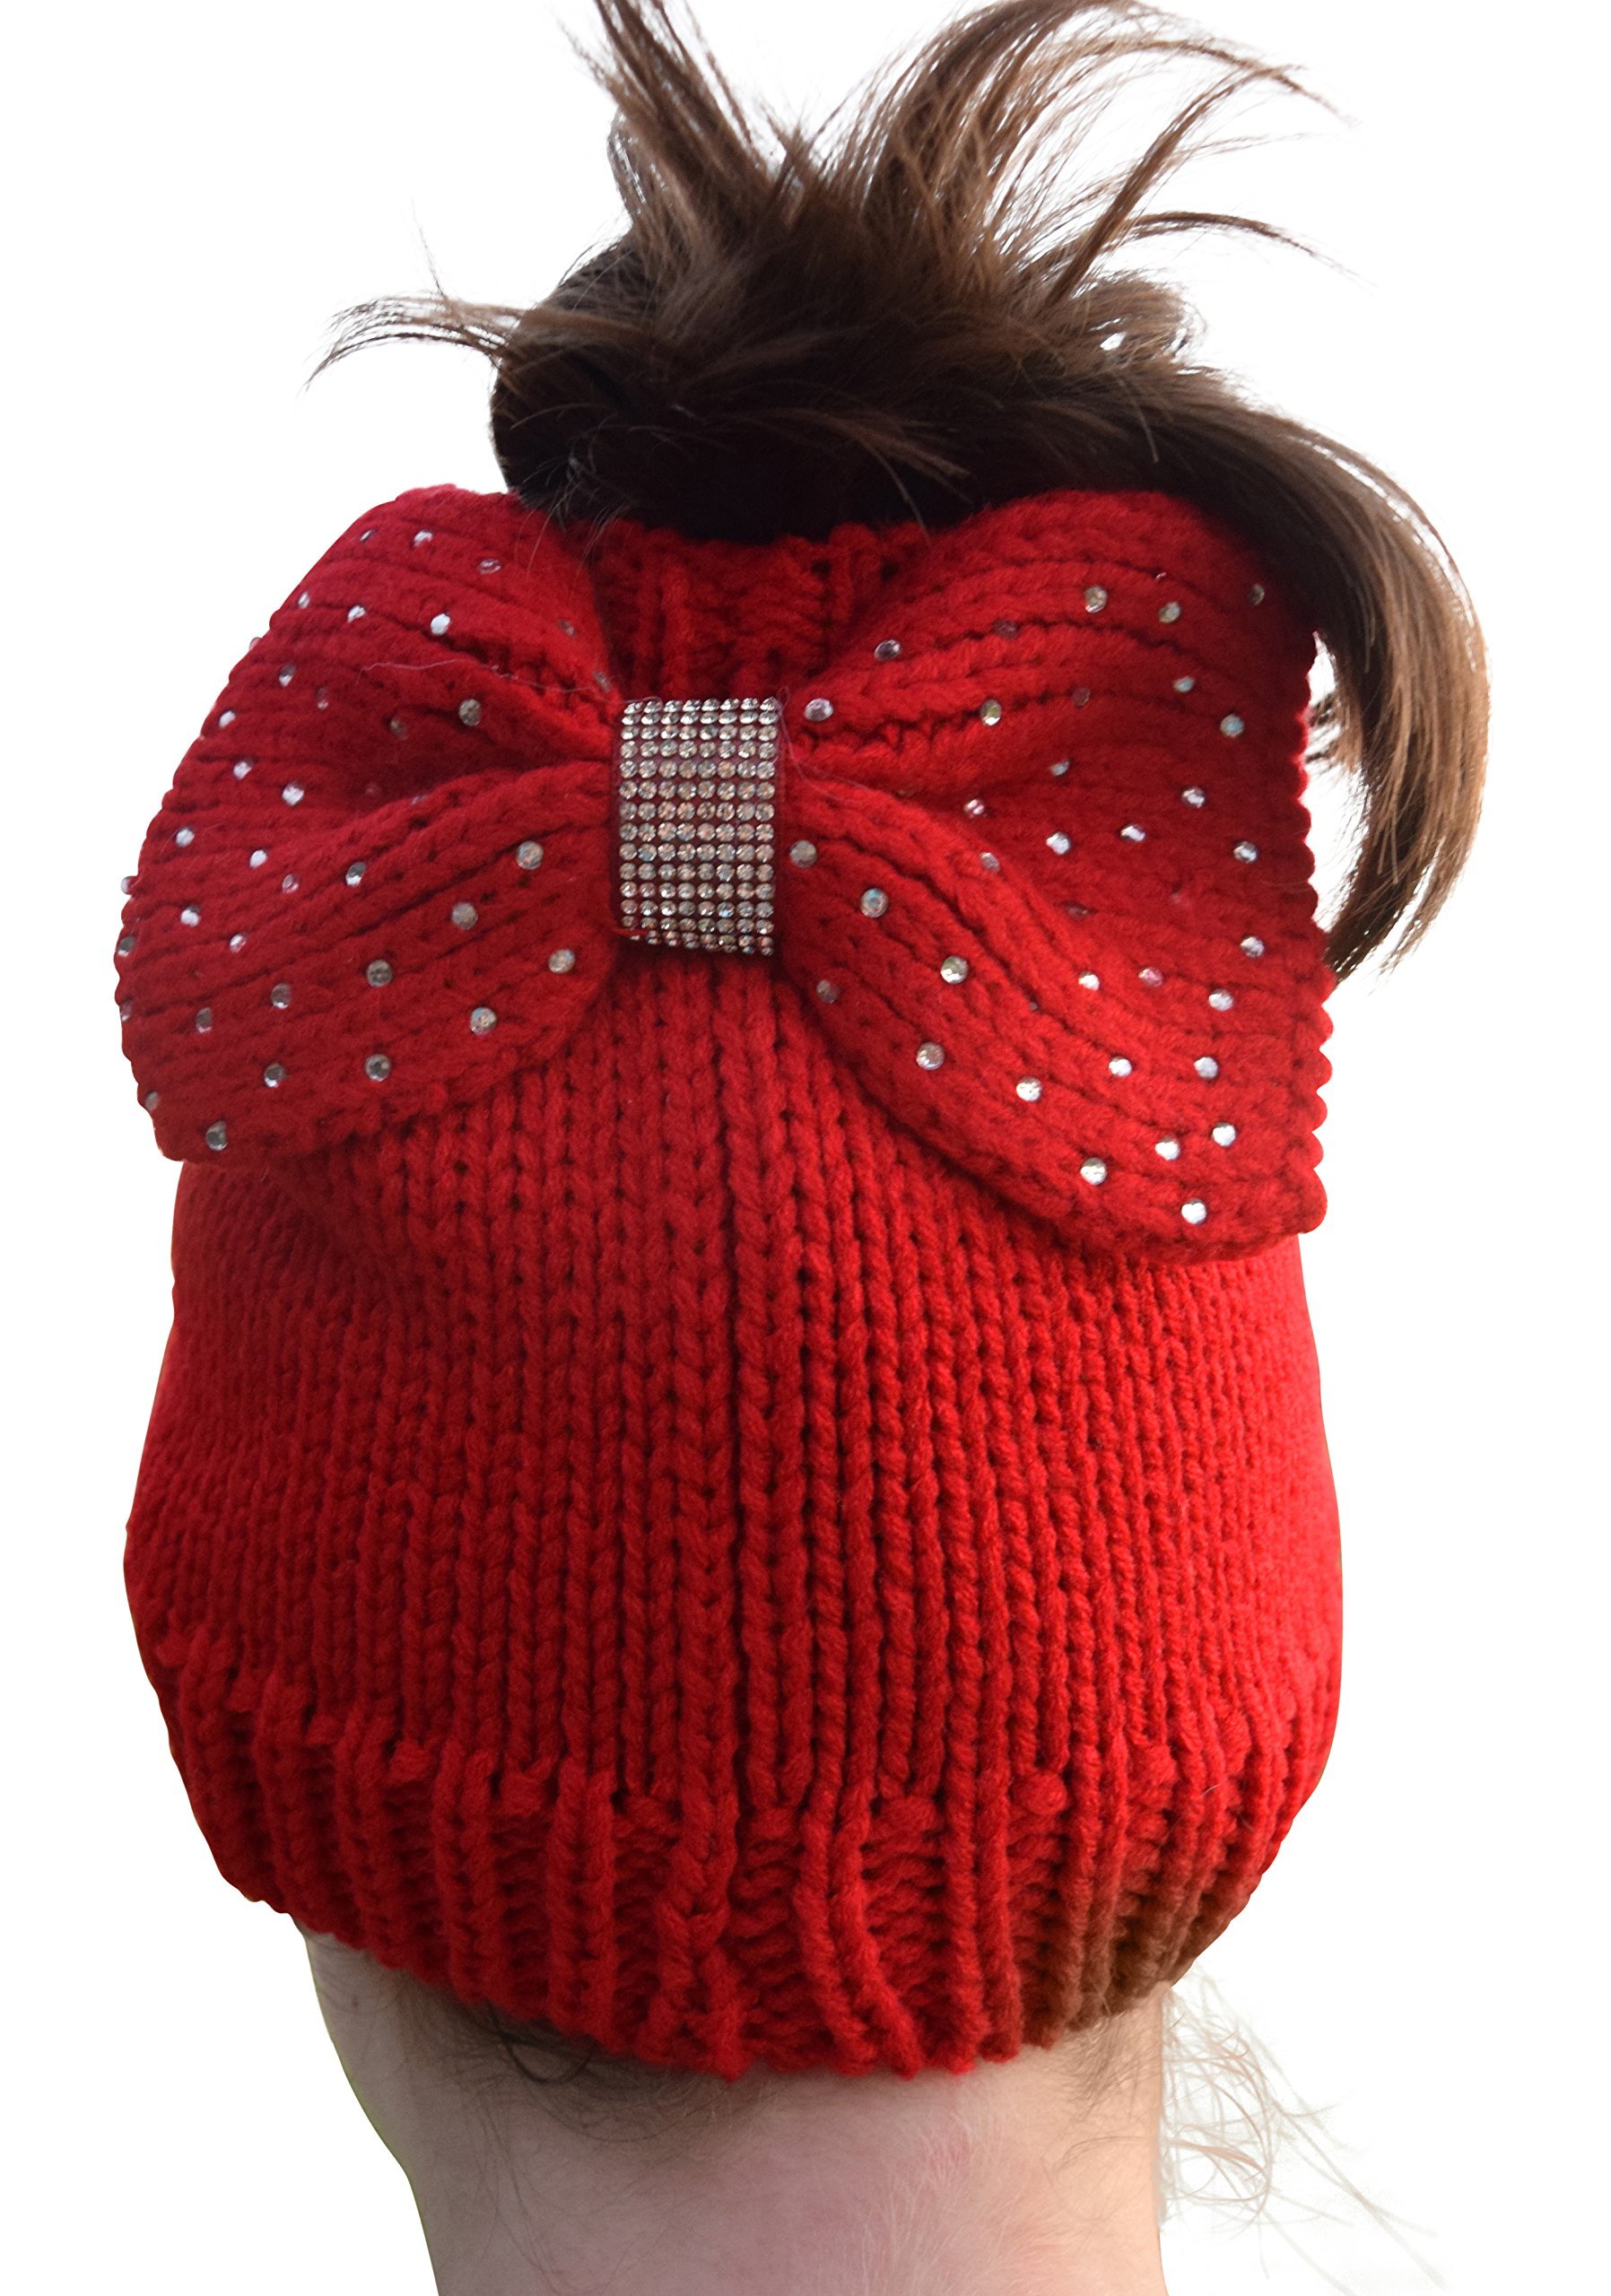 Womens Crochet Messy Bun Beanie Slouchy Style With Hole For Ponytail Hat With Rhinestone Studded Bow For Extra Cute Look (Red)